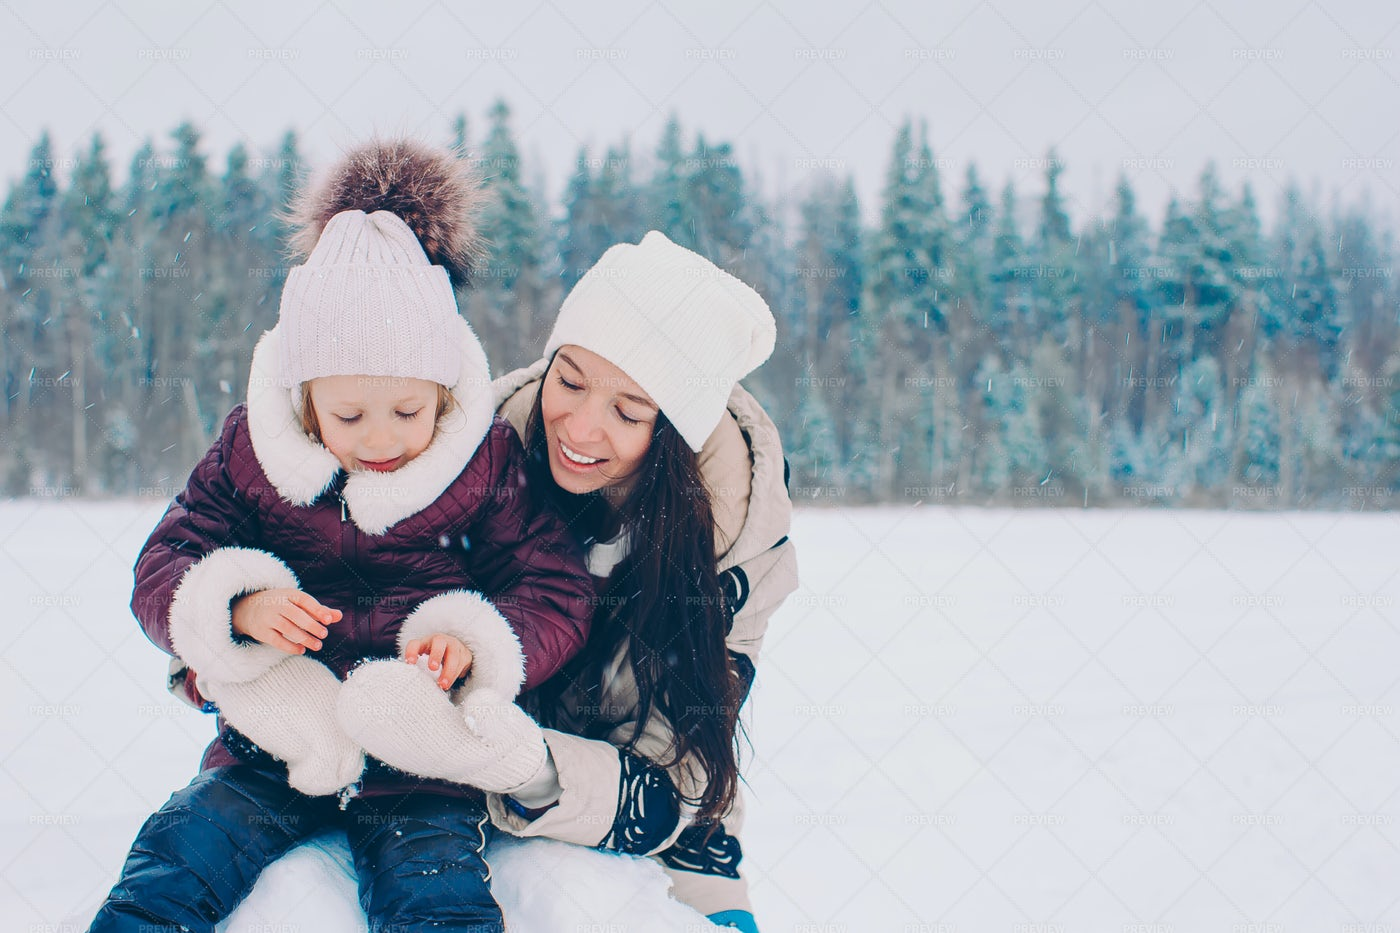 Making Snowballs With Mom: Stock Photos